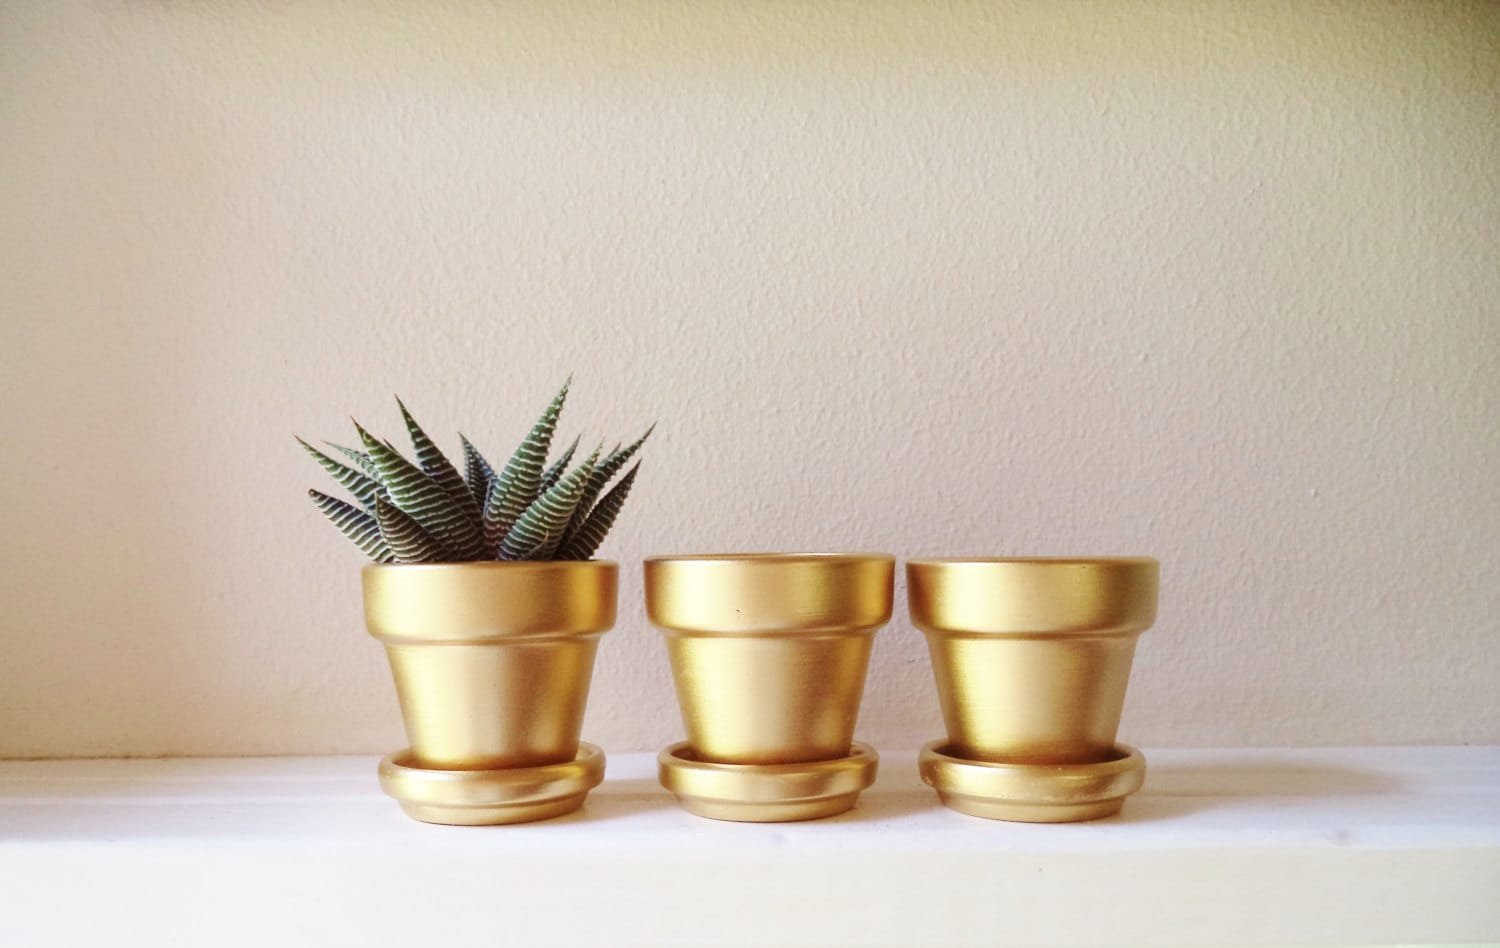 gold mini planters 2 inch succulent pots wedding favors